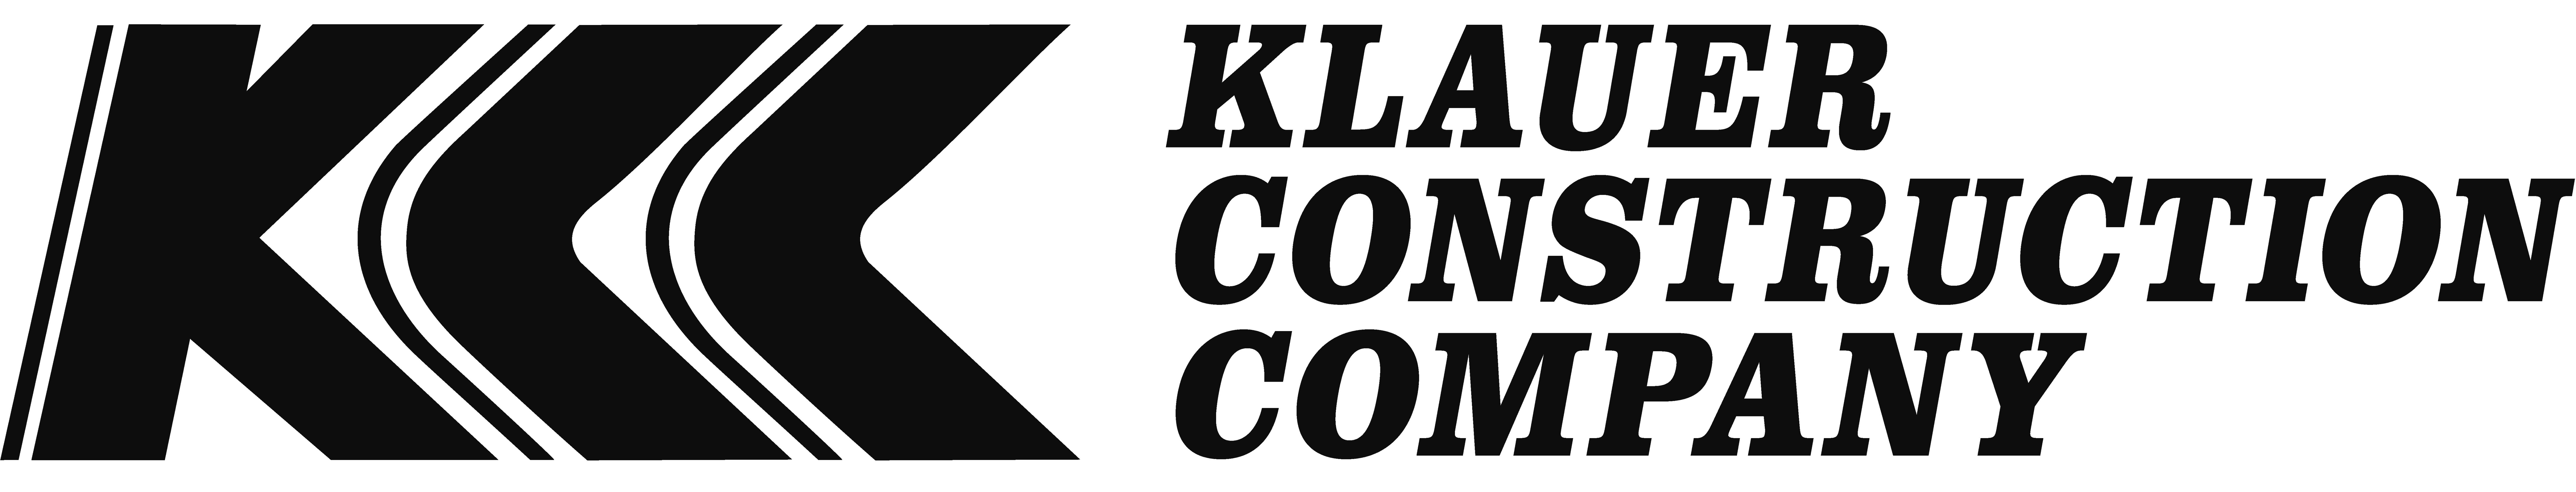 Klauer Construction Company